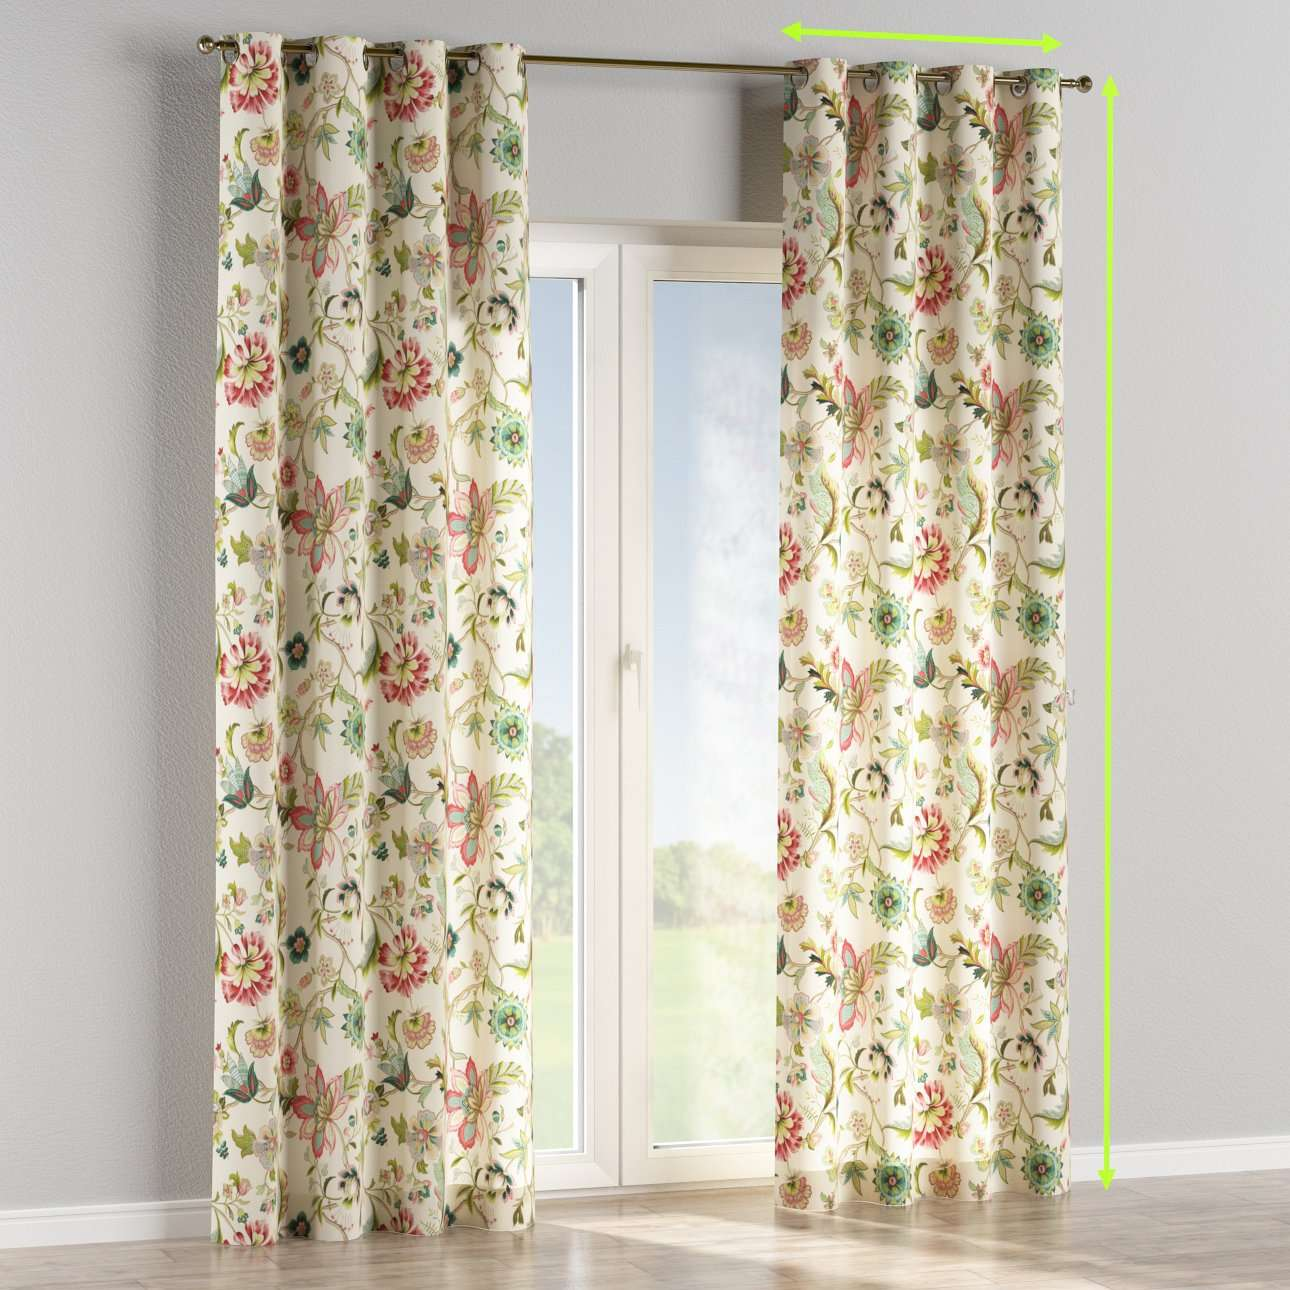 Eyelet curtain in collection Londres, fabric: 122-00